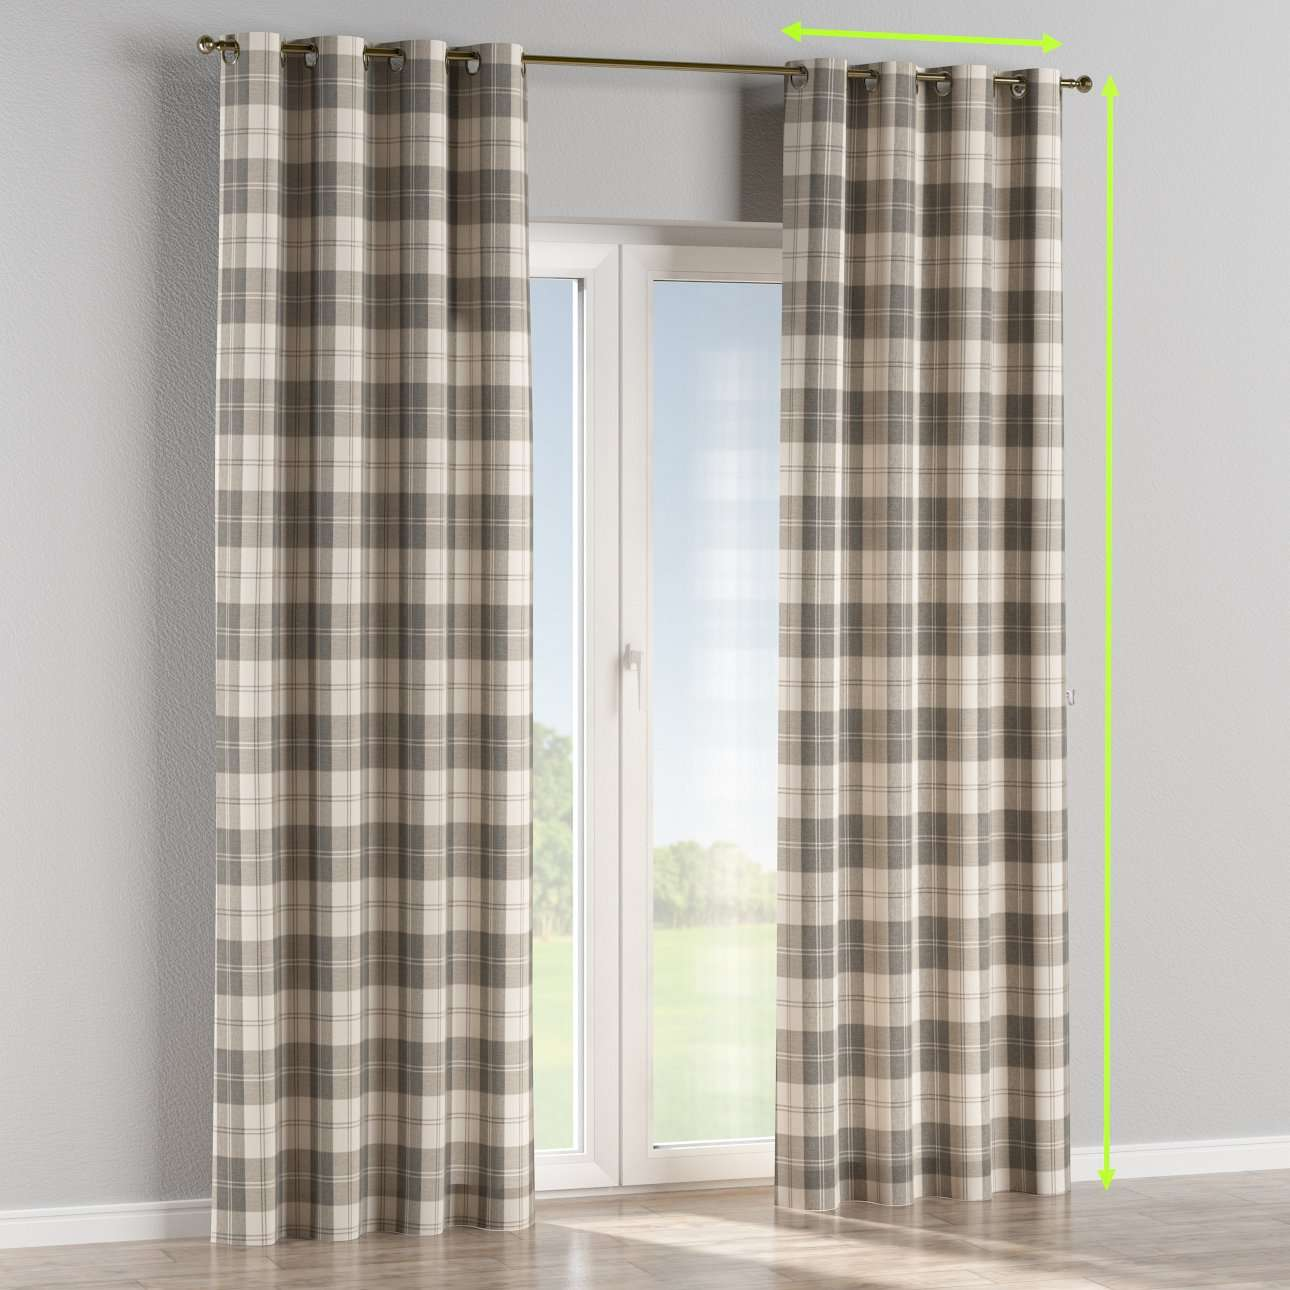 Eyelet curtains in collection Edinburgh , fabric: 115-79